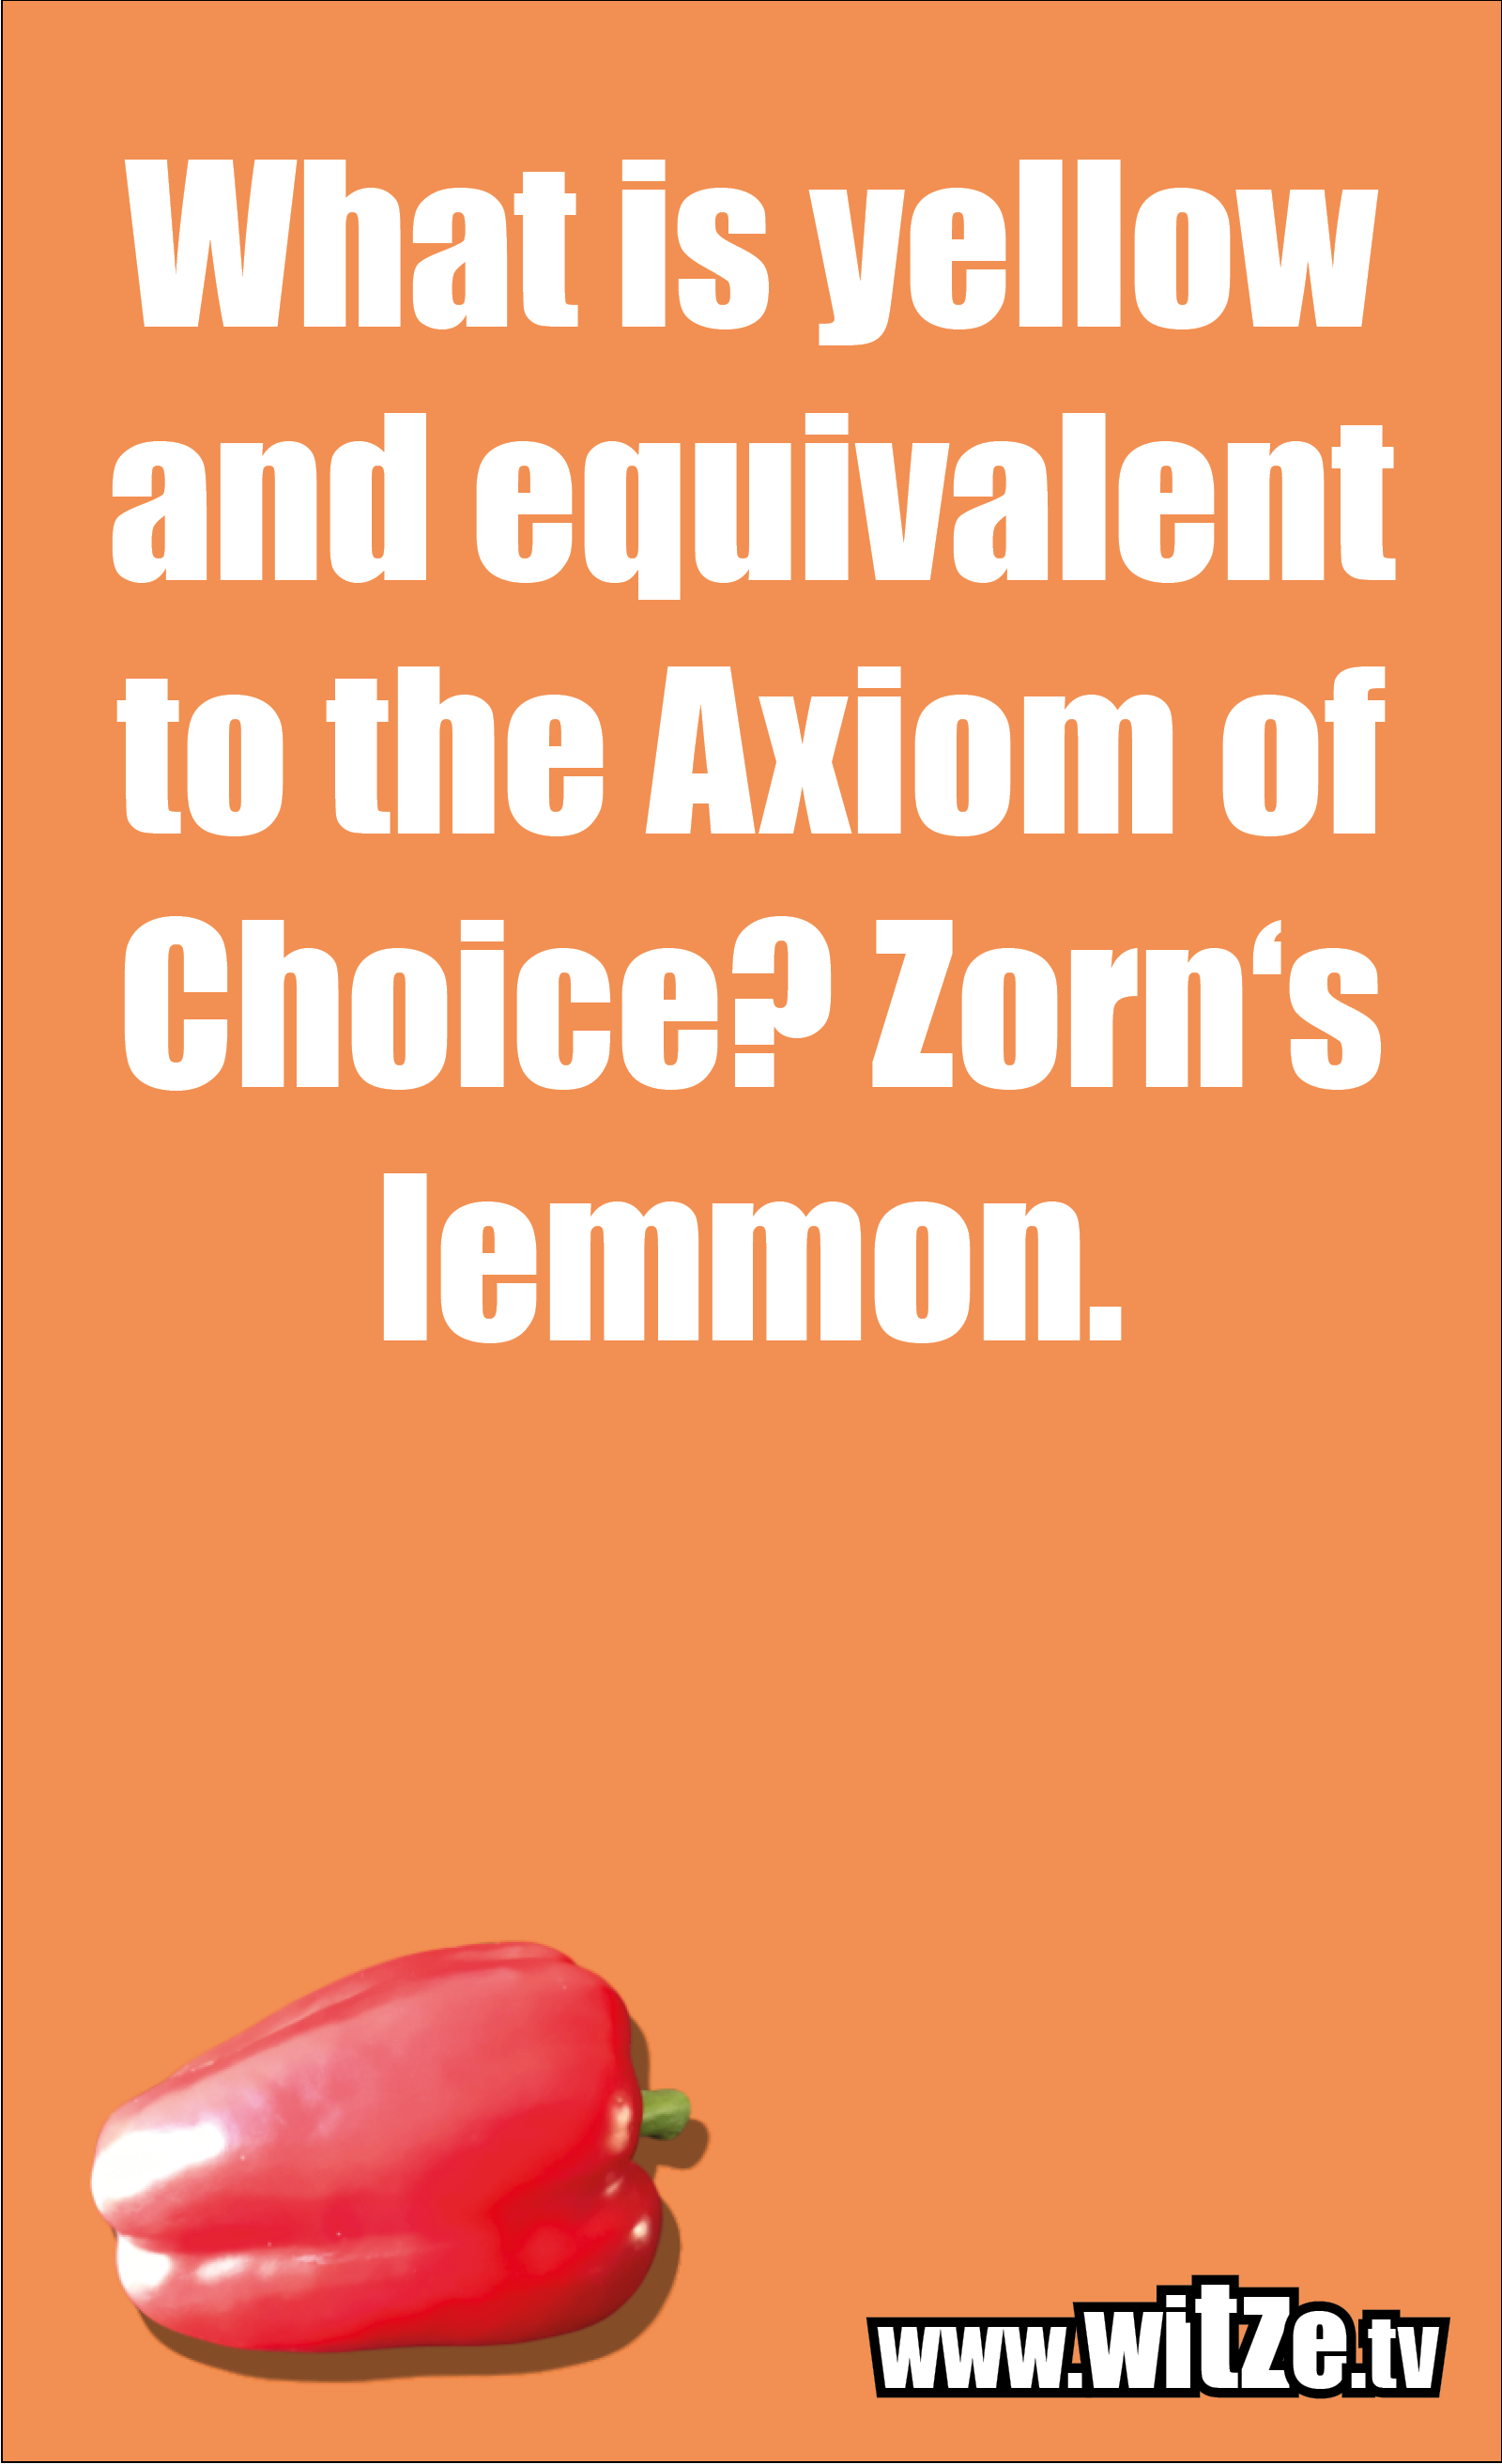 Math joke… What is yellow and equivalent to the Axiom of Choice? Zorn's lemmon.